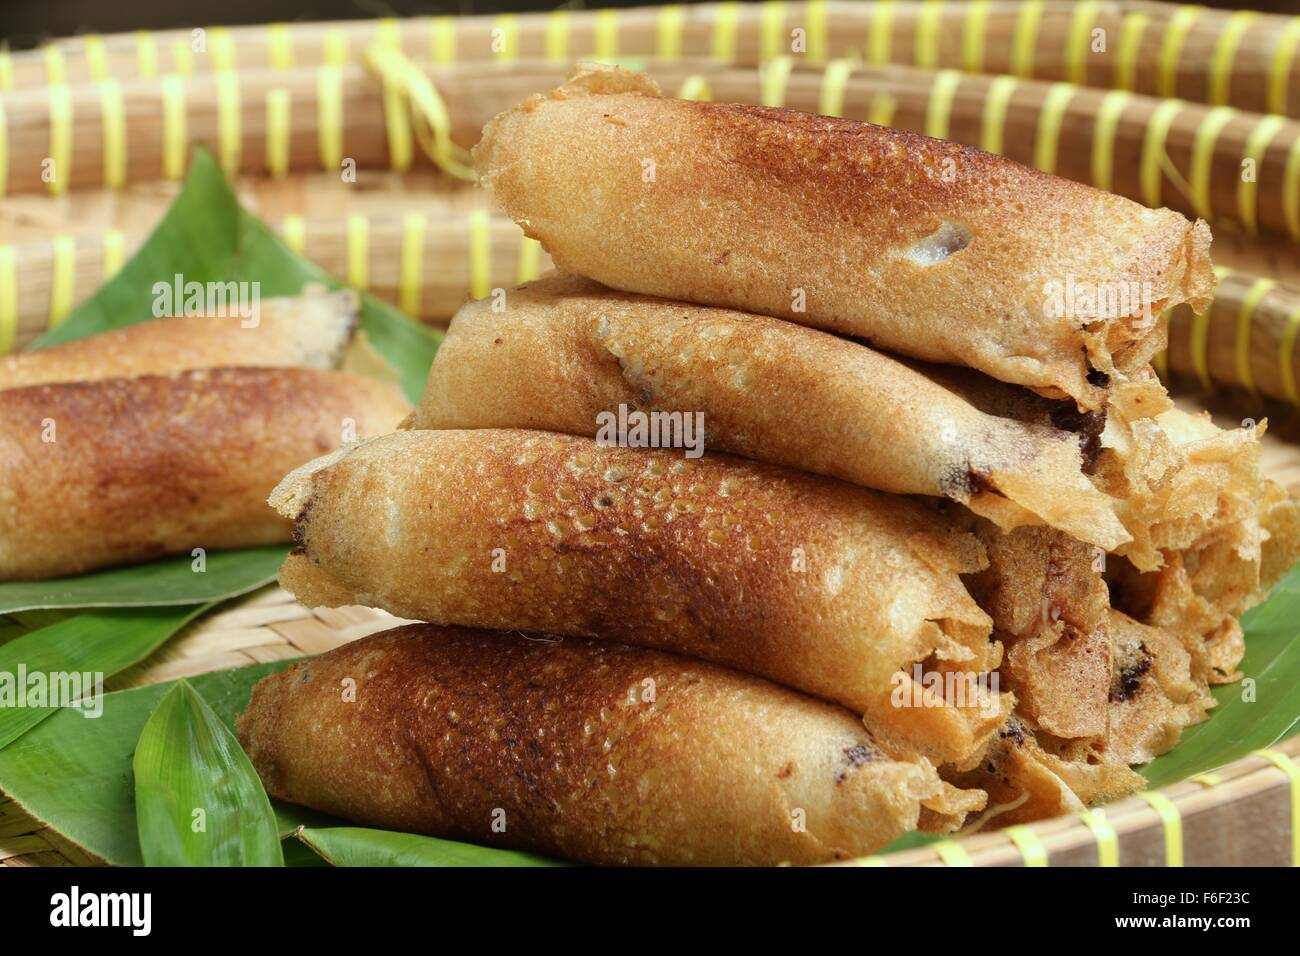 Serabi Solo, Javanese pancakes of coconut milk with chocolate sprinkles added then rolled. - Stock Image